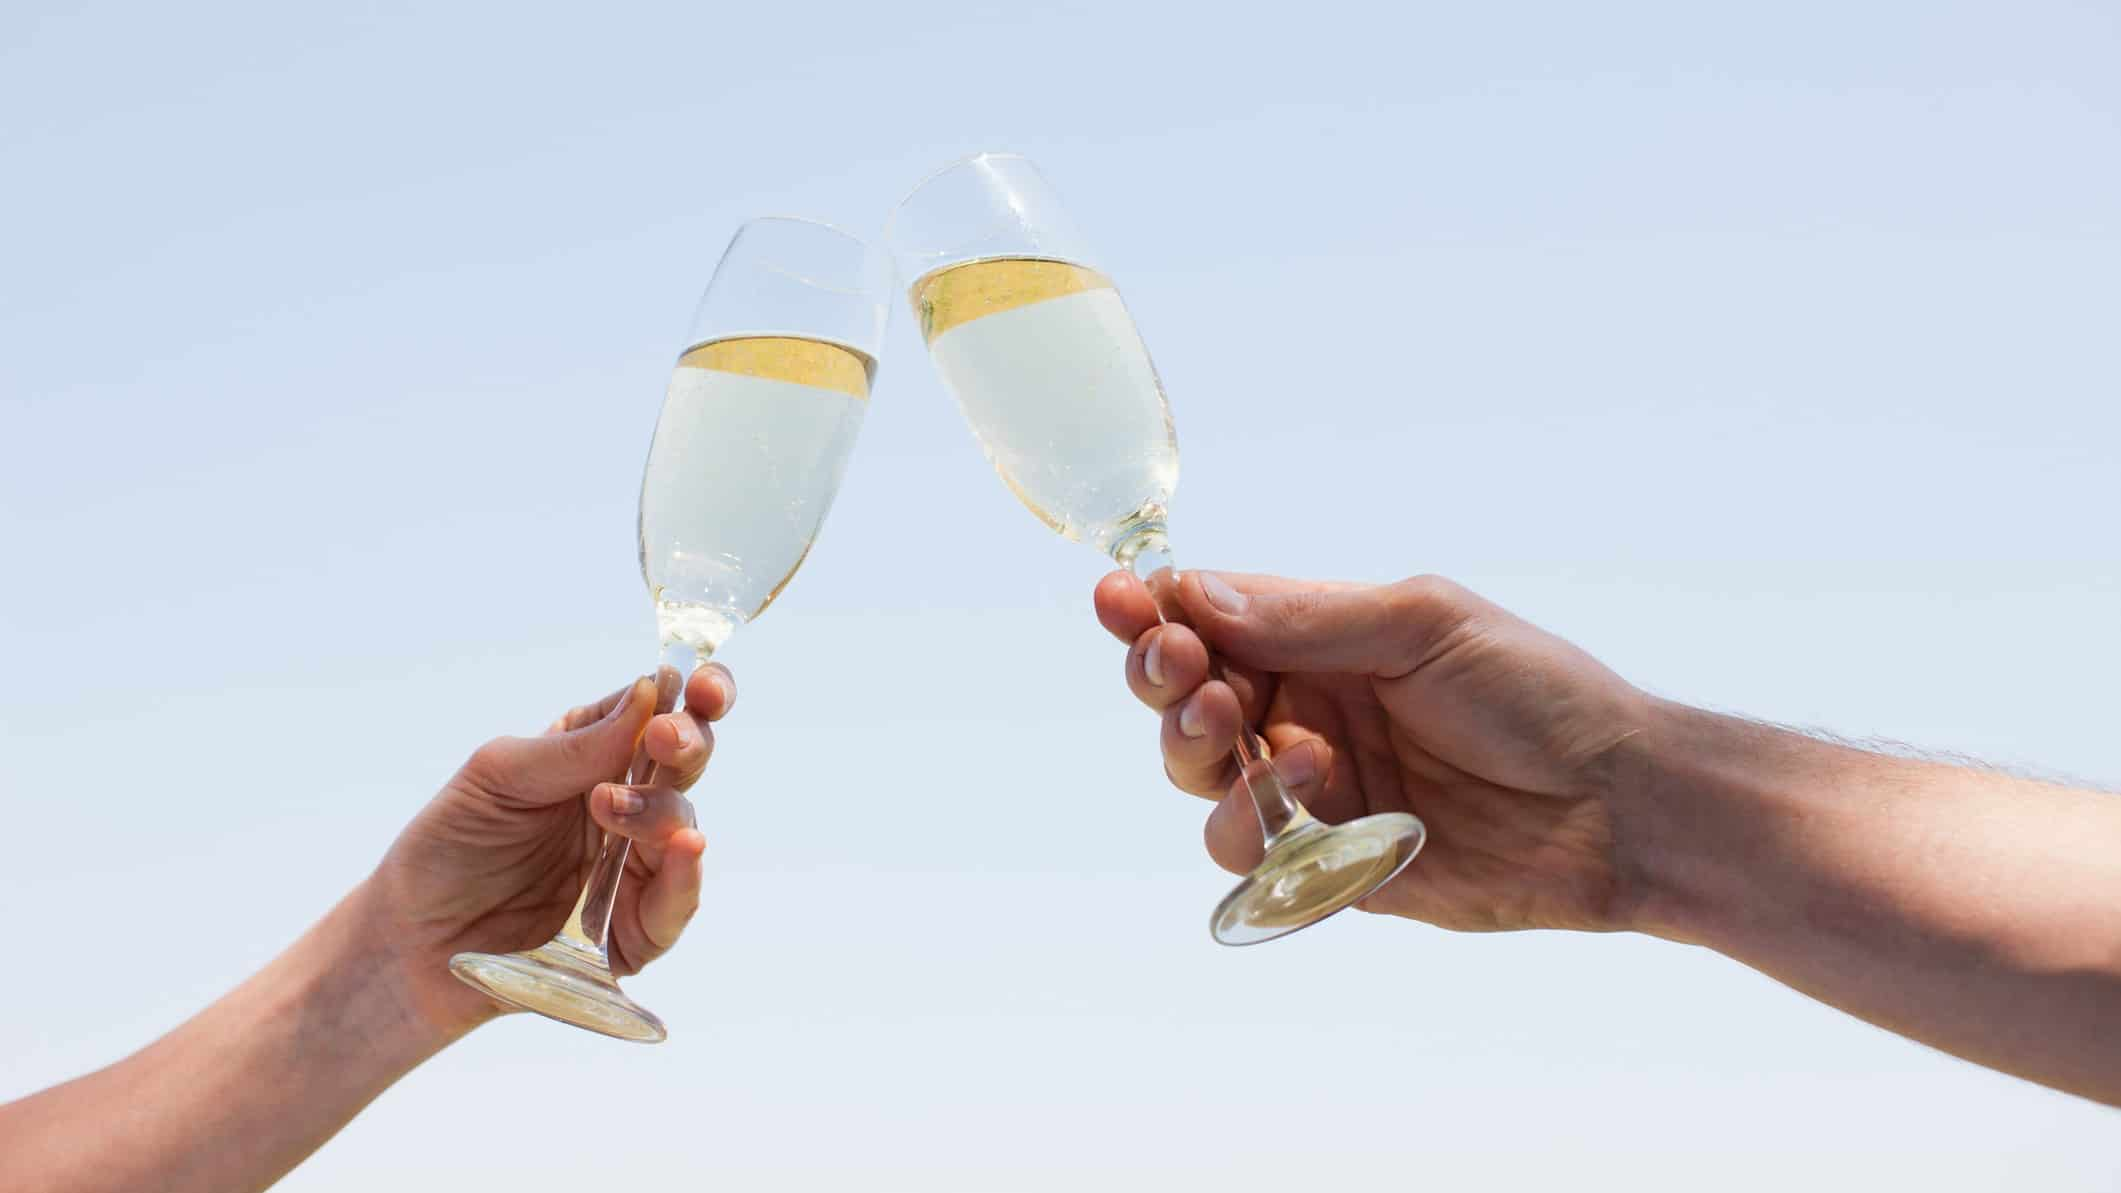 wine share price rising represented by two people raising wine glasses